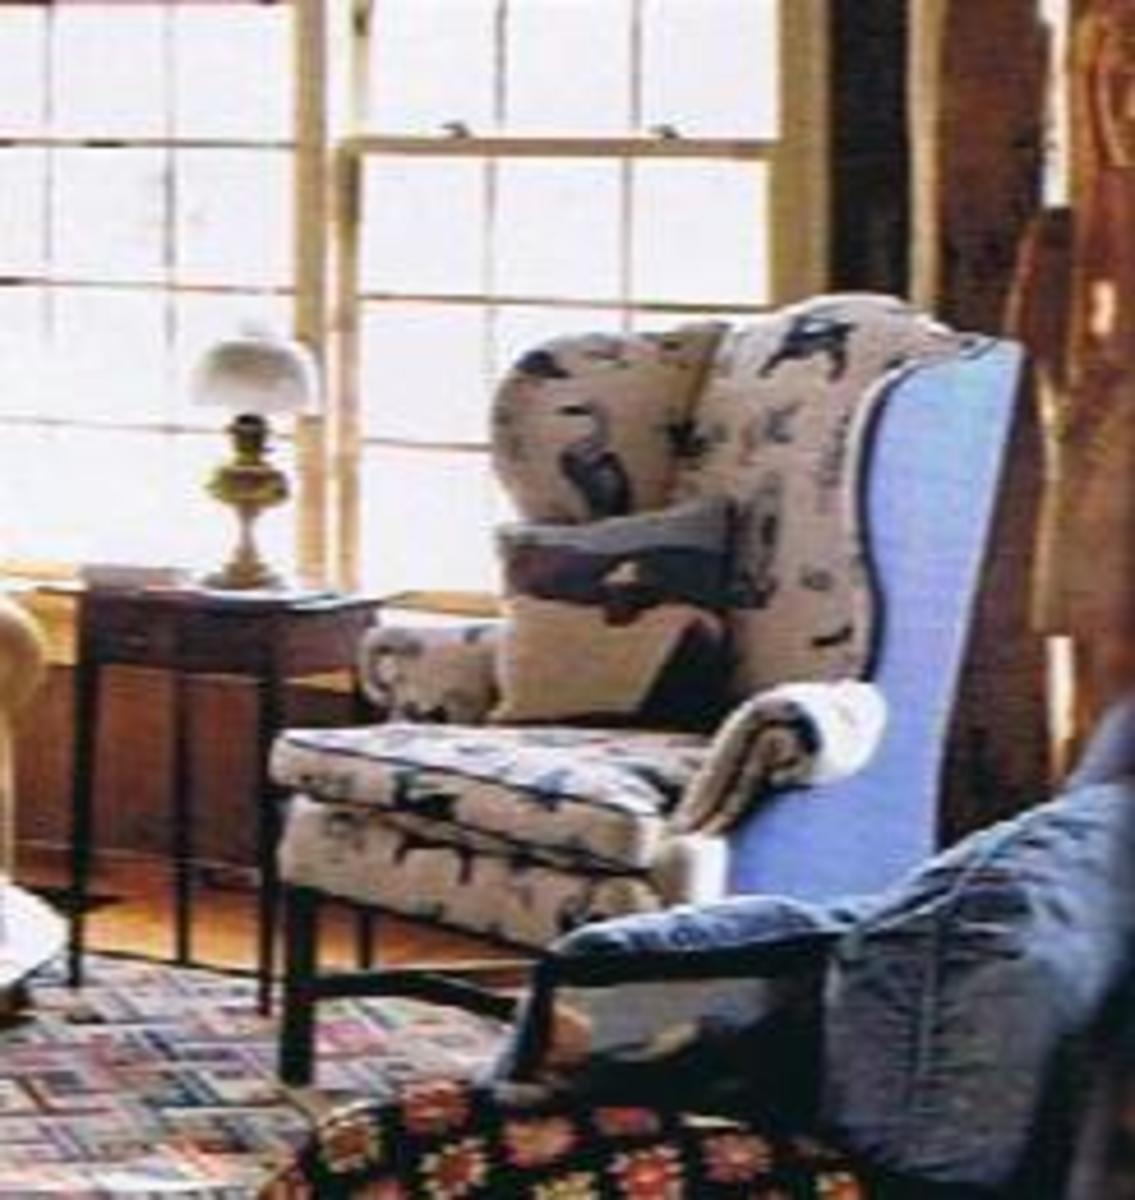 chair 1 this pretty chair has a blue and white print on front and solid chair upholstery fabric 2